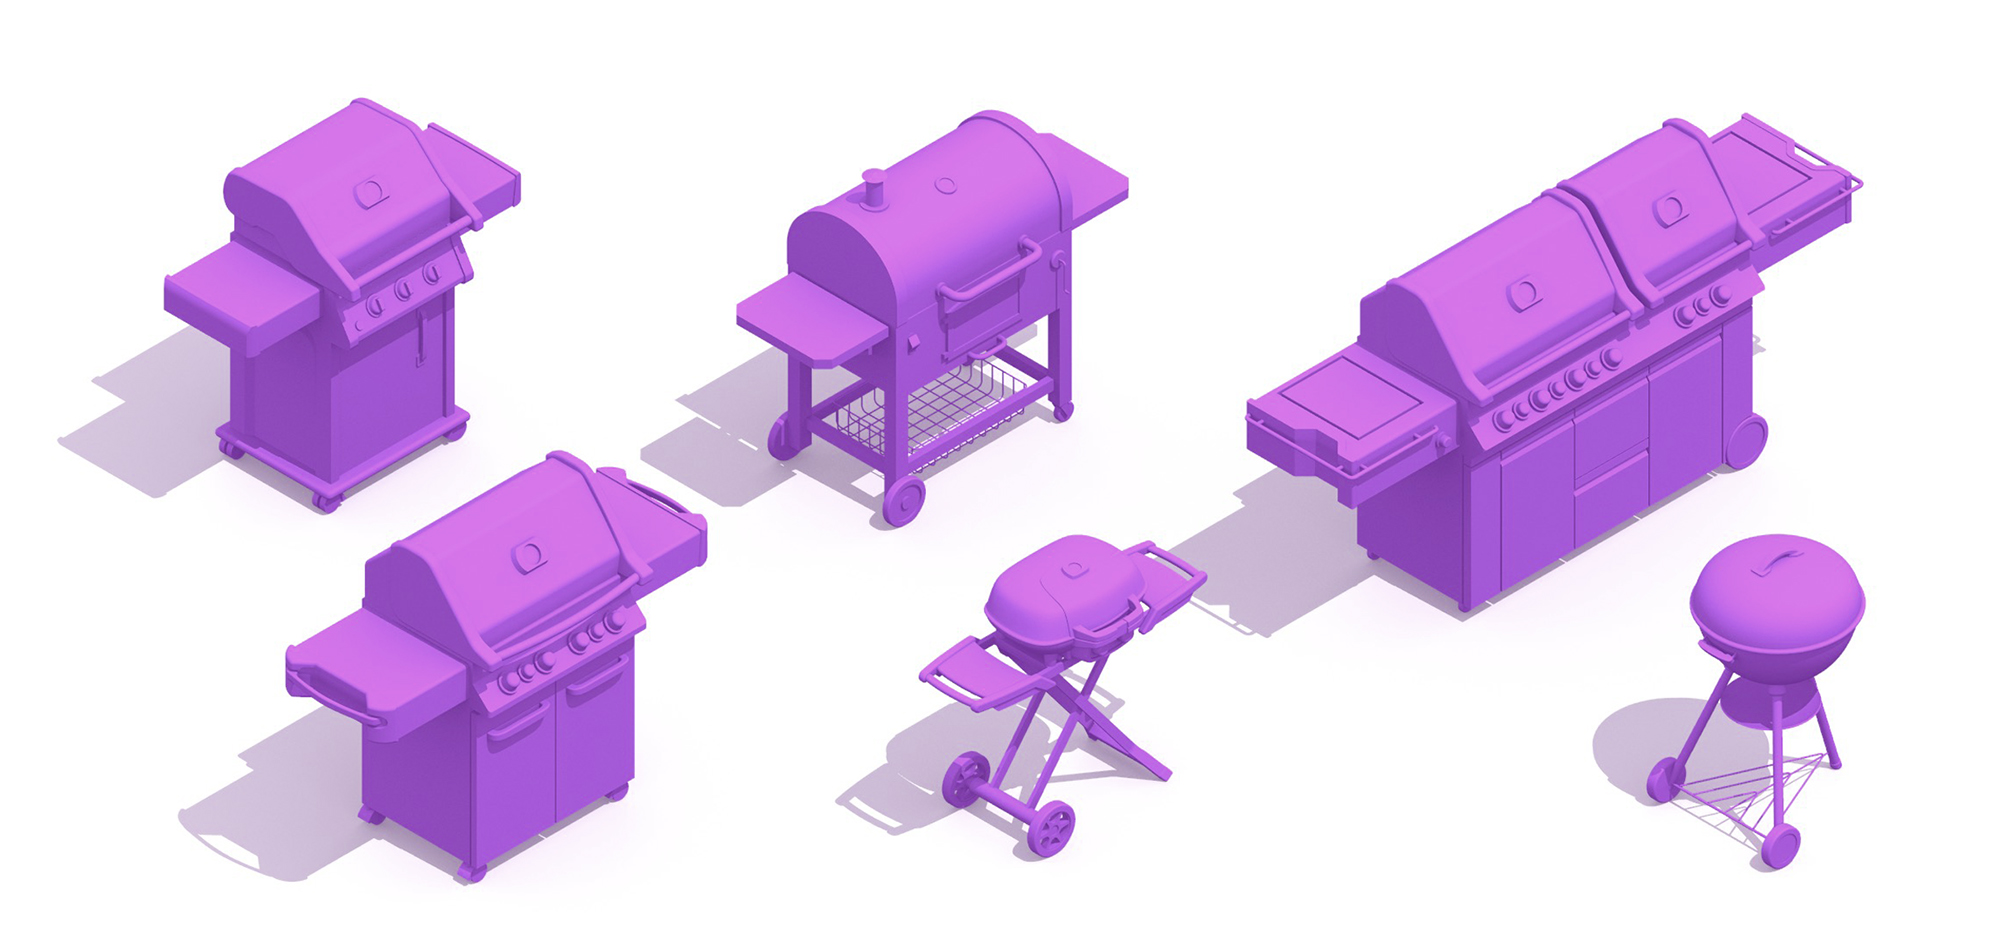 Collection of BBQ Grills of various sizes, styles, fuel types, and designs viewed in 3D